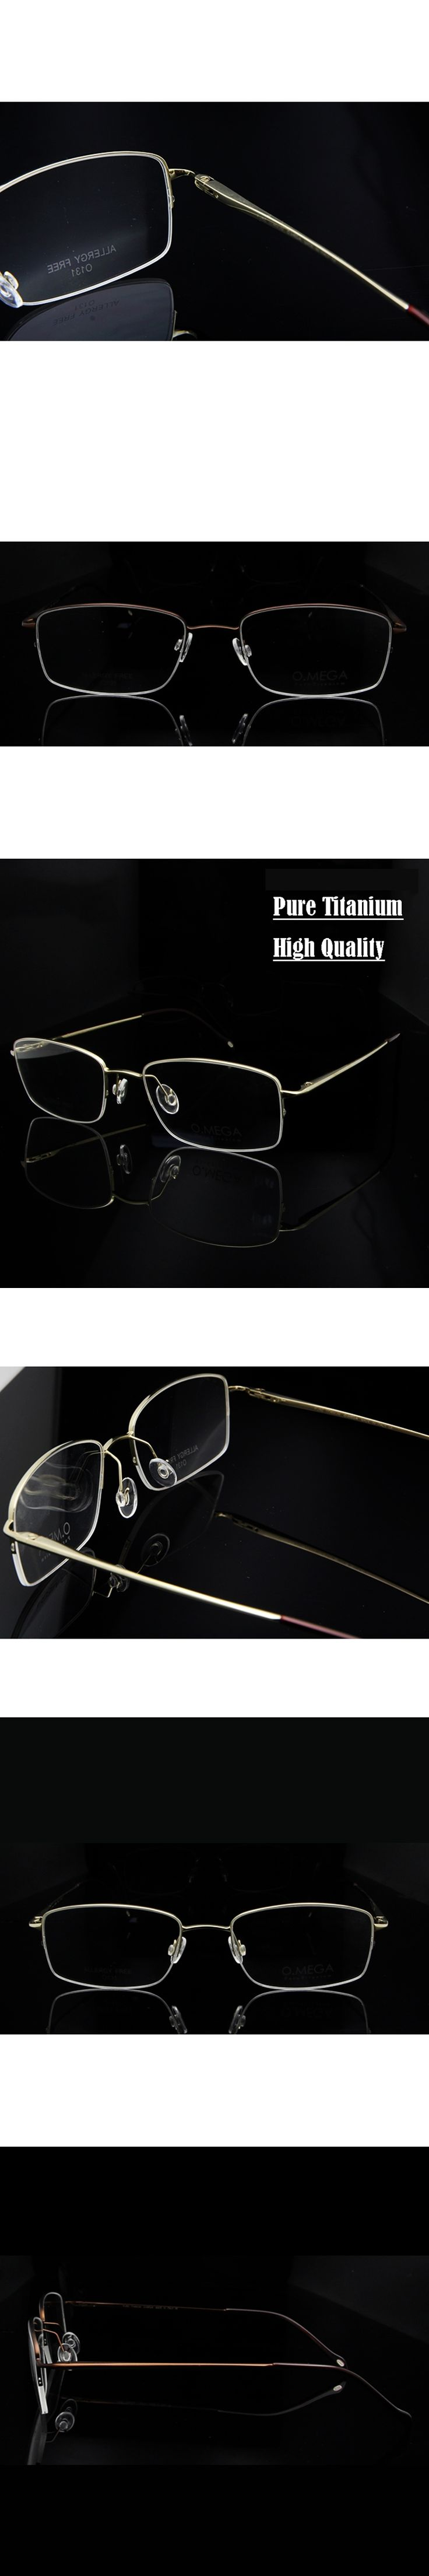 Pure Titanium Eyeglass Frames Men High Quality Half Frame Glasses Men's Prescription Eyewear Clear Lens Glasses